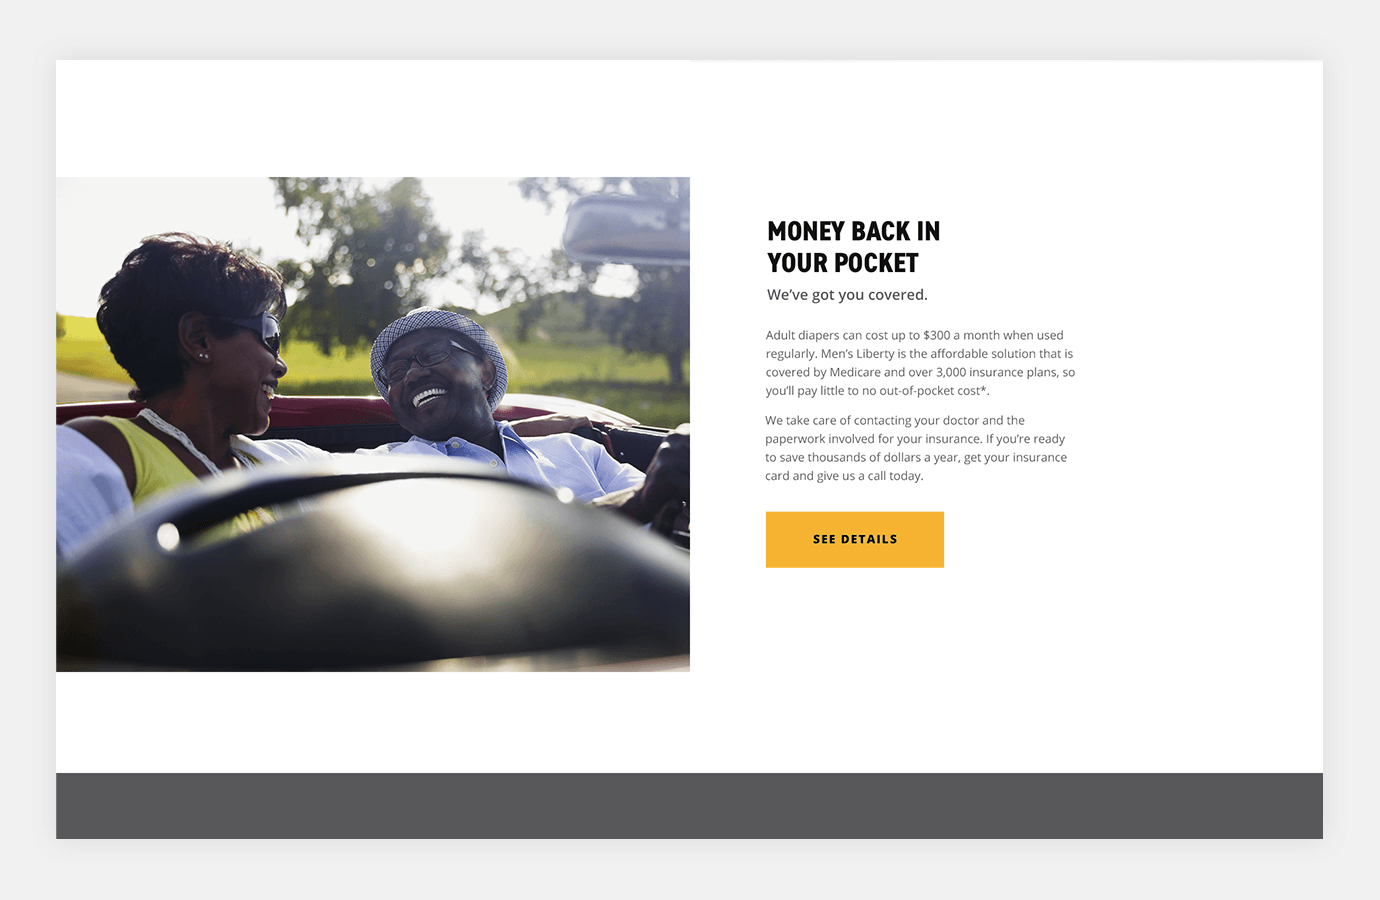 Screenshot of Men's Liberty website showing two people driving in car and laughing